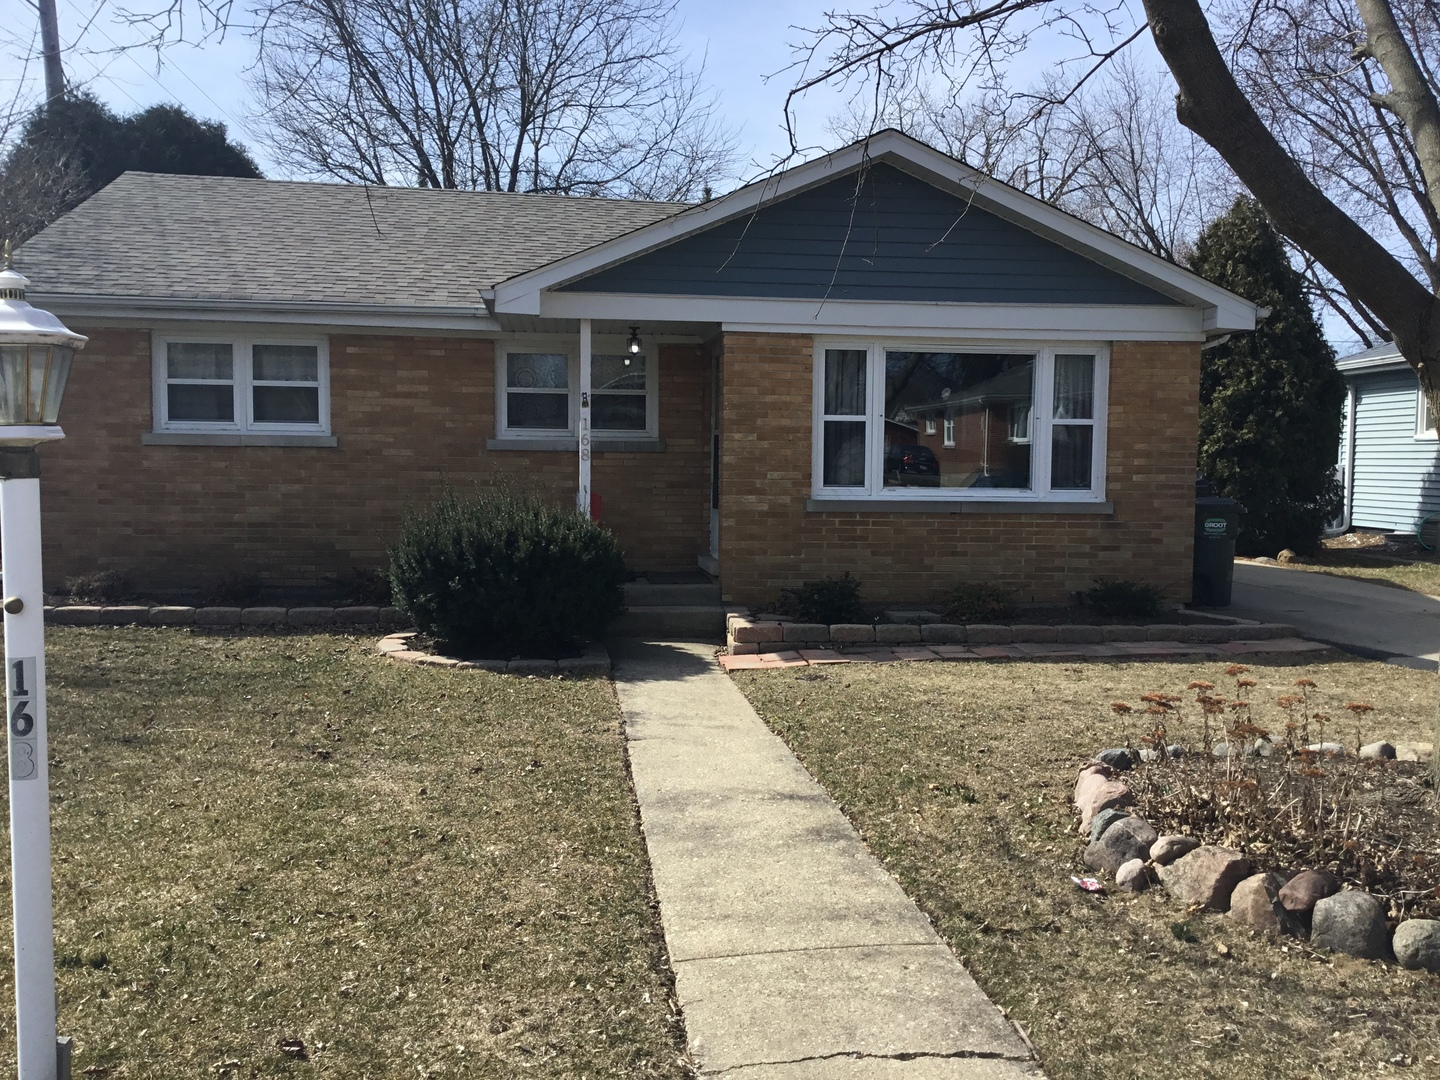 168 North Shaddle Avenue, Mundelein in Lake County, IL 60060 Home for Sale